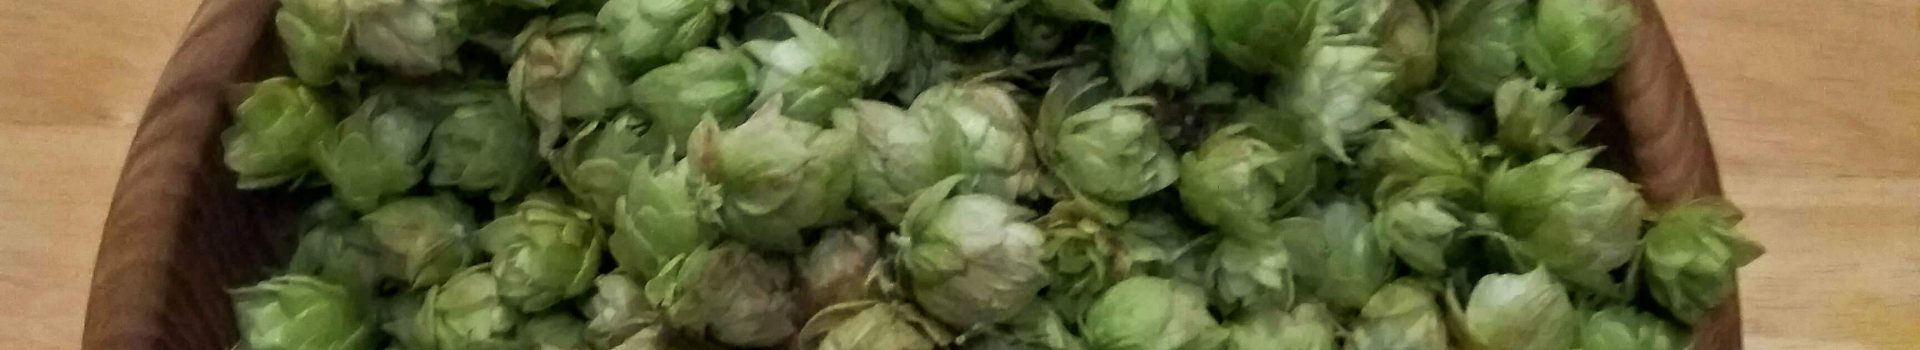 Perle harvesting and brewing with fresh hops